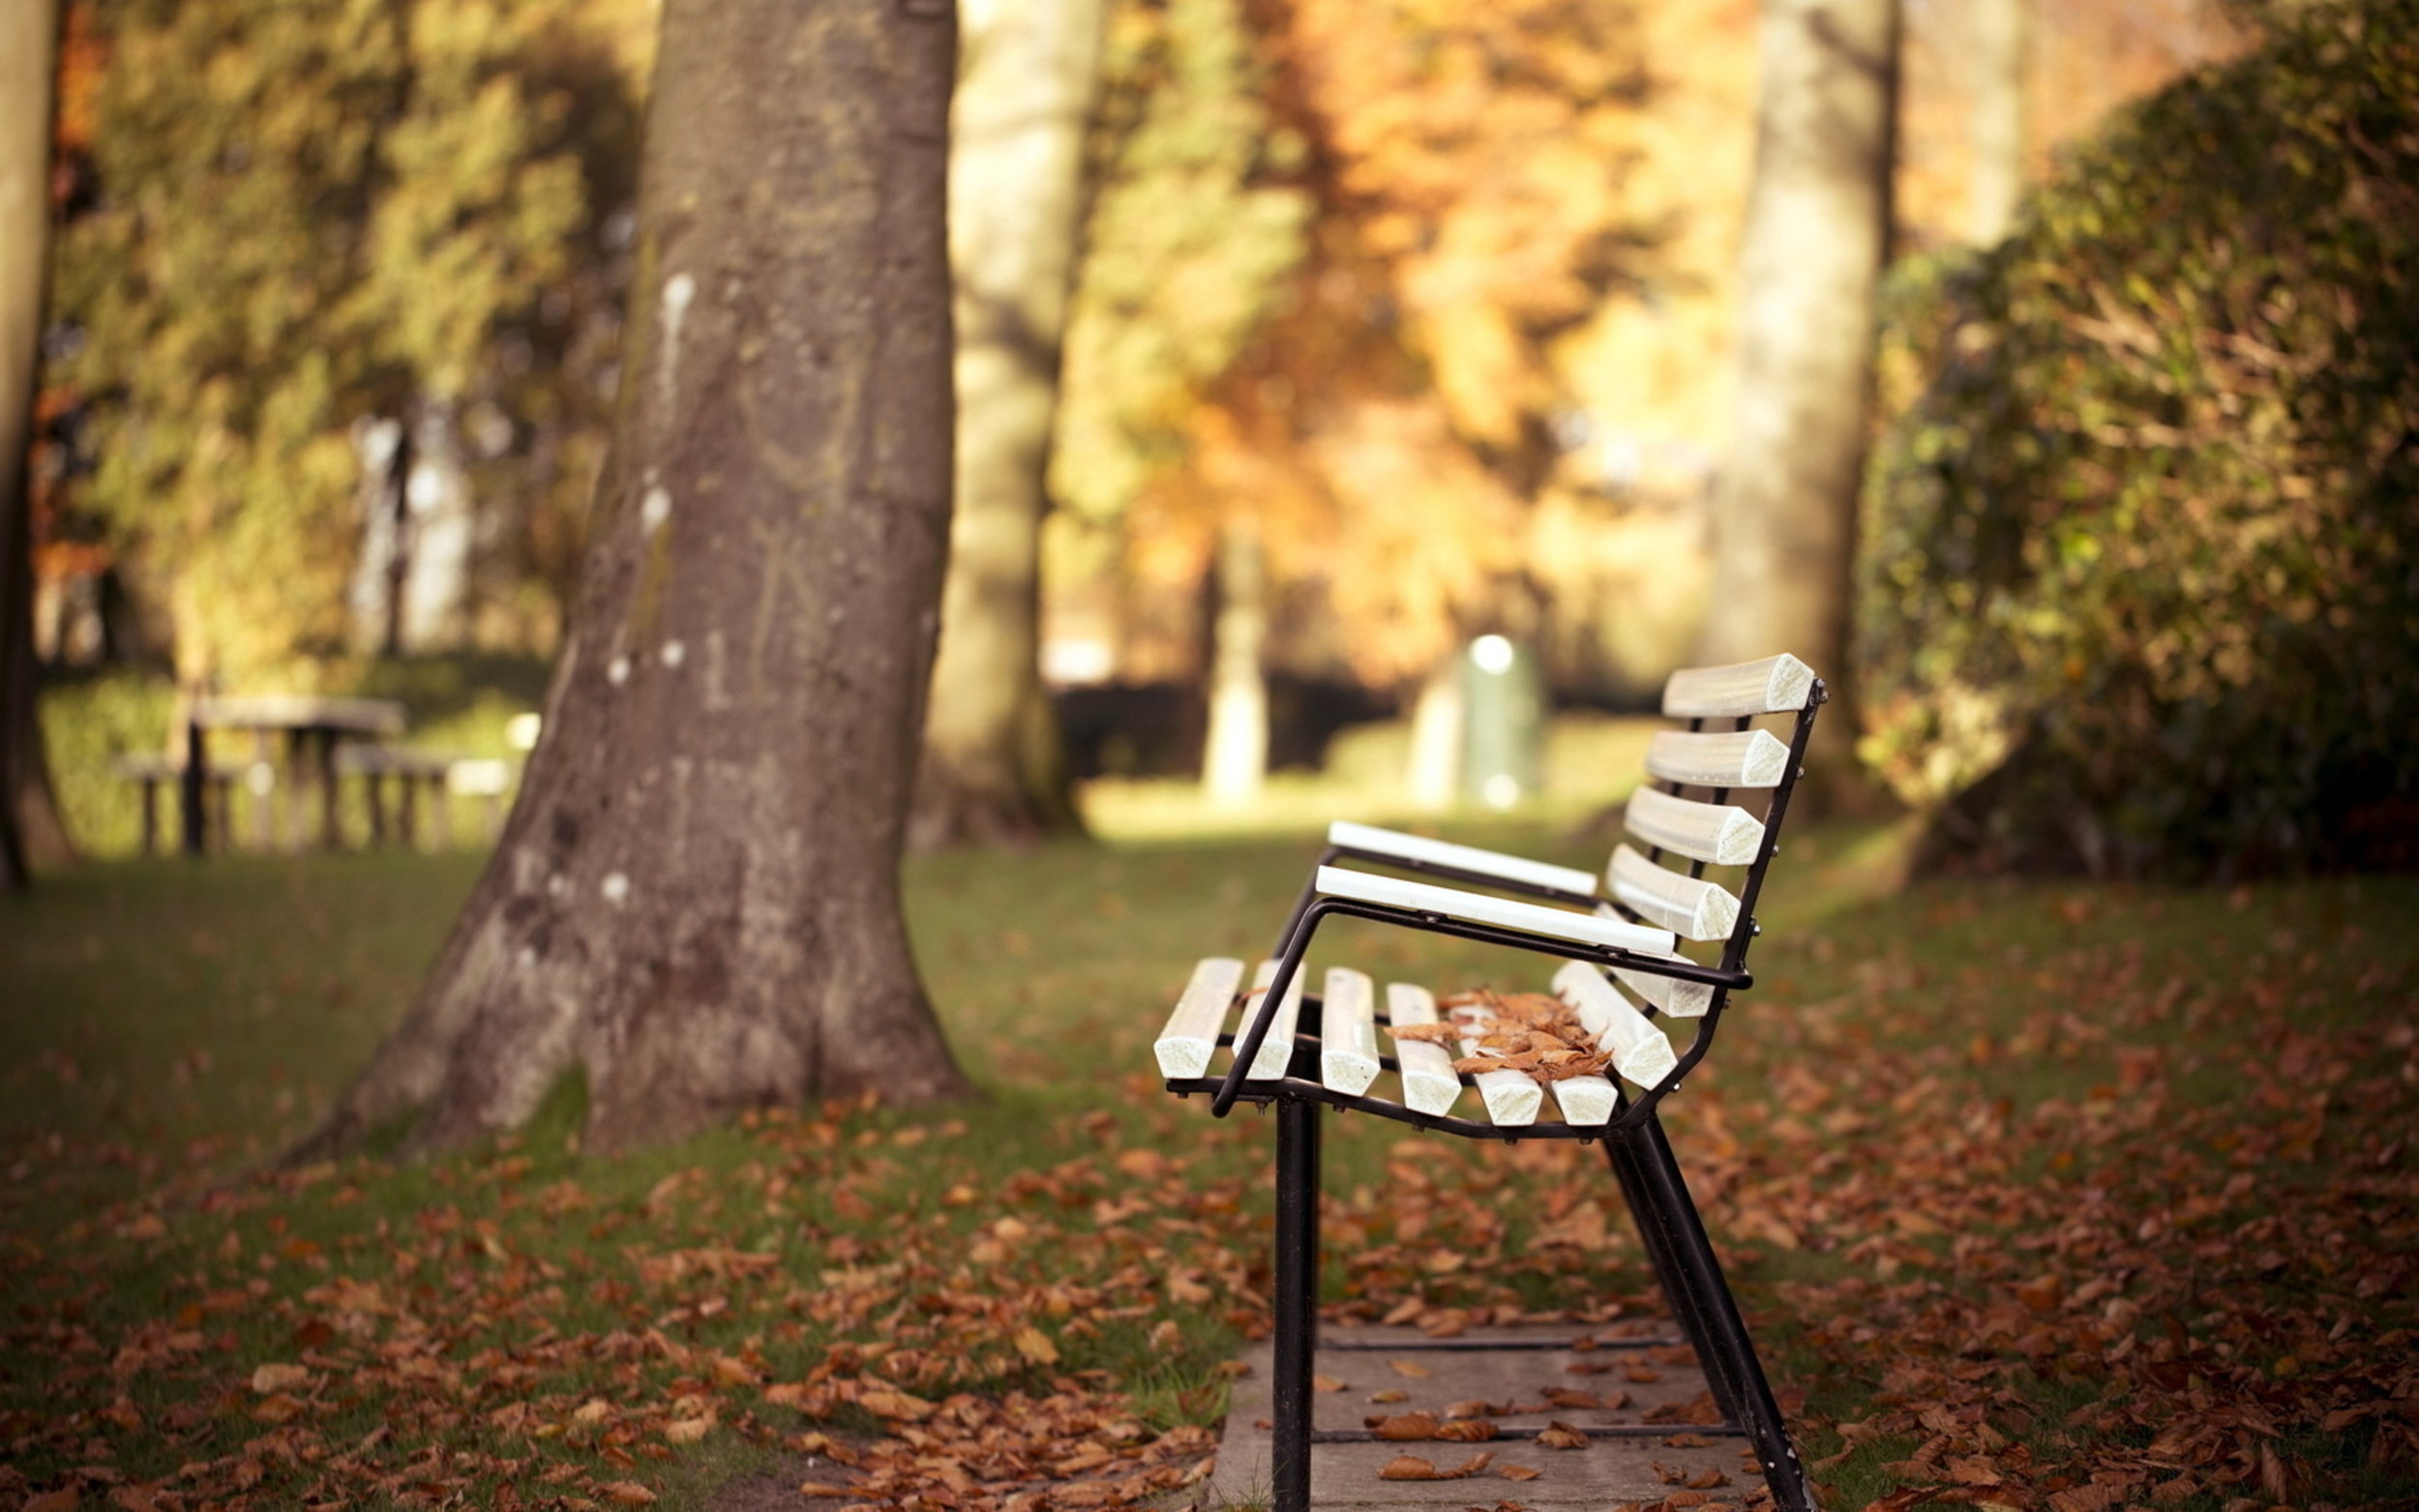 Sweet a bench! Now I can break and upload all these pics to instagram! #fall #nature